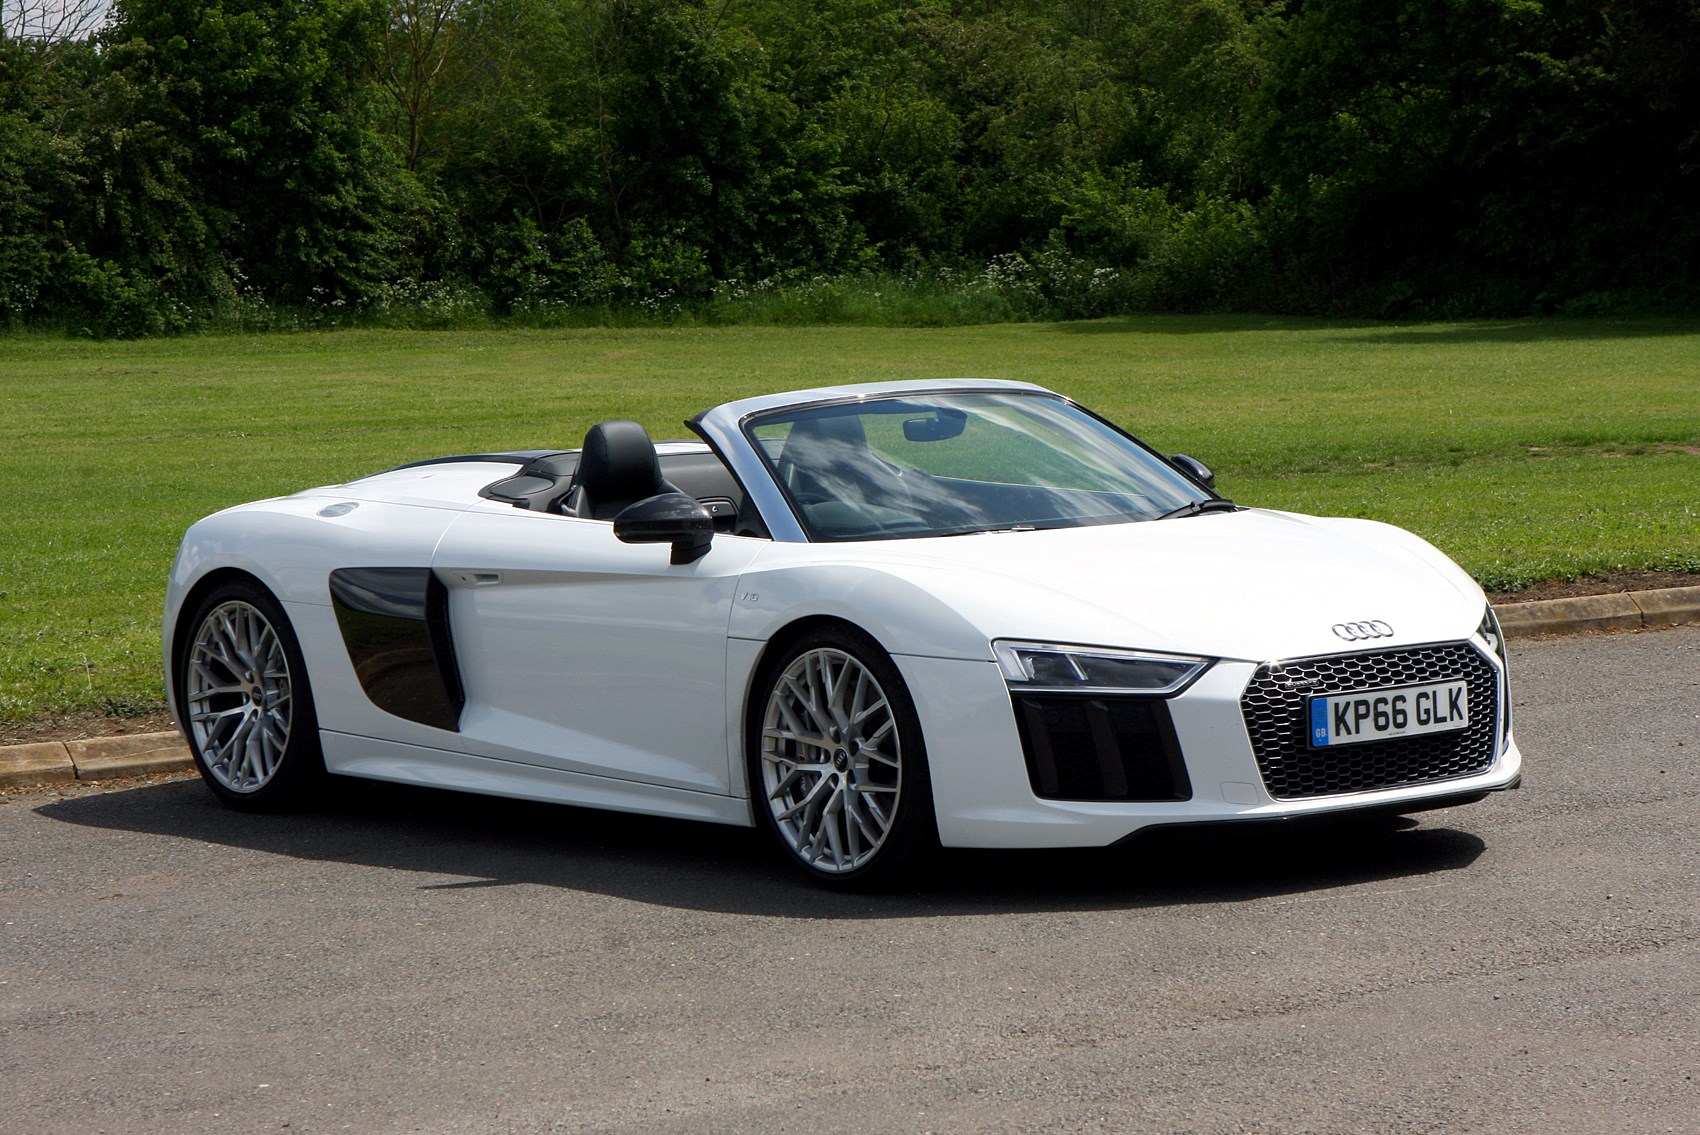 Audi R8 Spyder: How Much Does It Cost To Run?